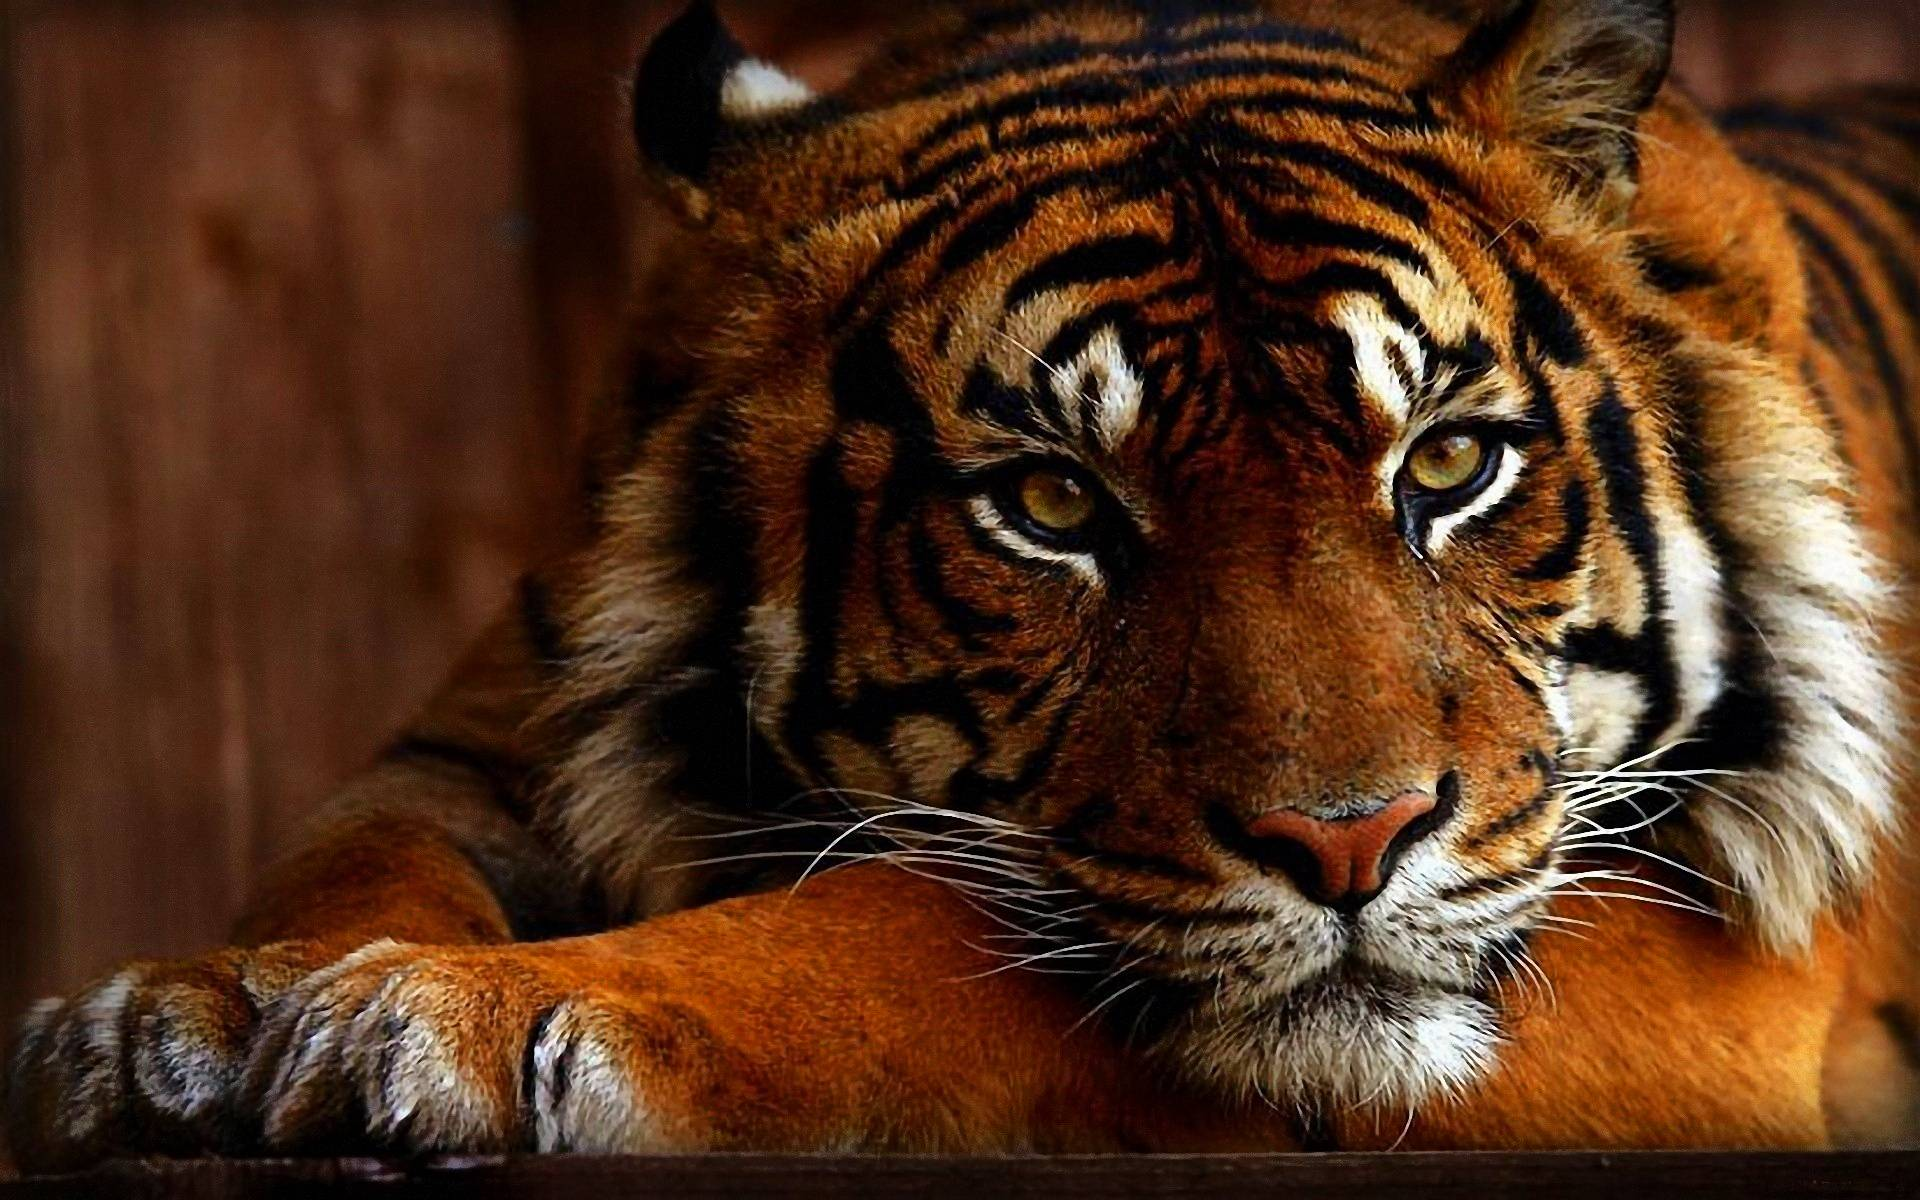 Wallpapers HD Tiger 73 172042 High Definition Wallpapers